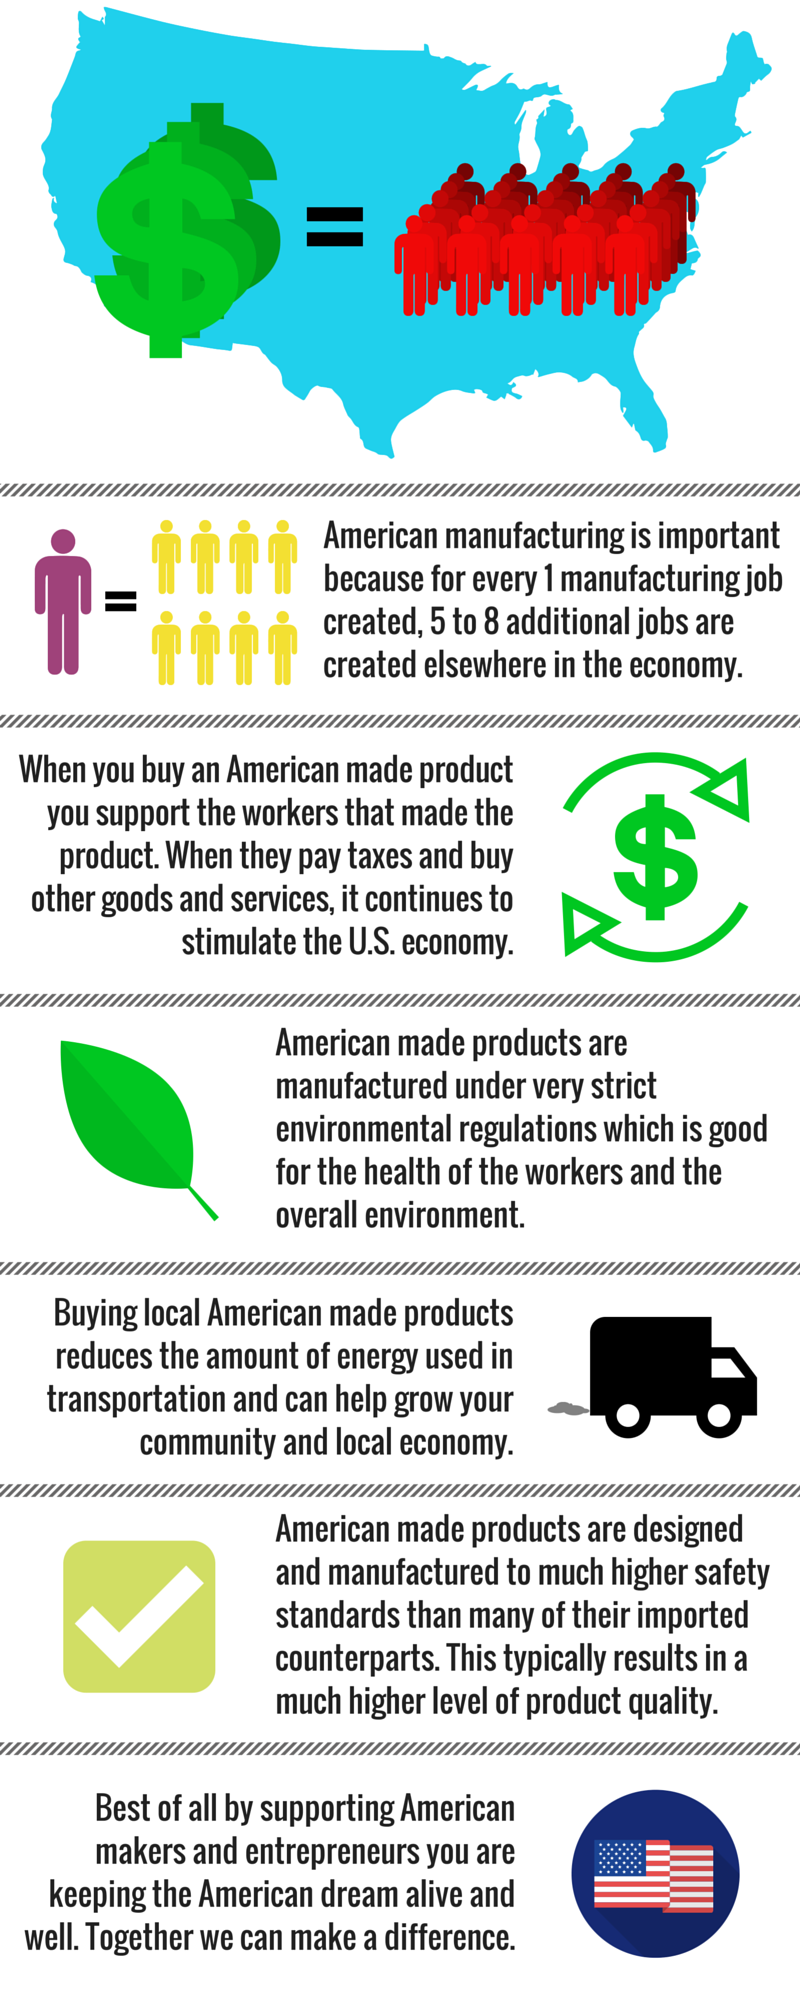 The power of a purchase is huge. If every American spent just $3.33 on American made goods it would create over 10,000 jobs; growing American manufacturing, helping the environment, and making a difference.